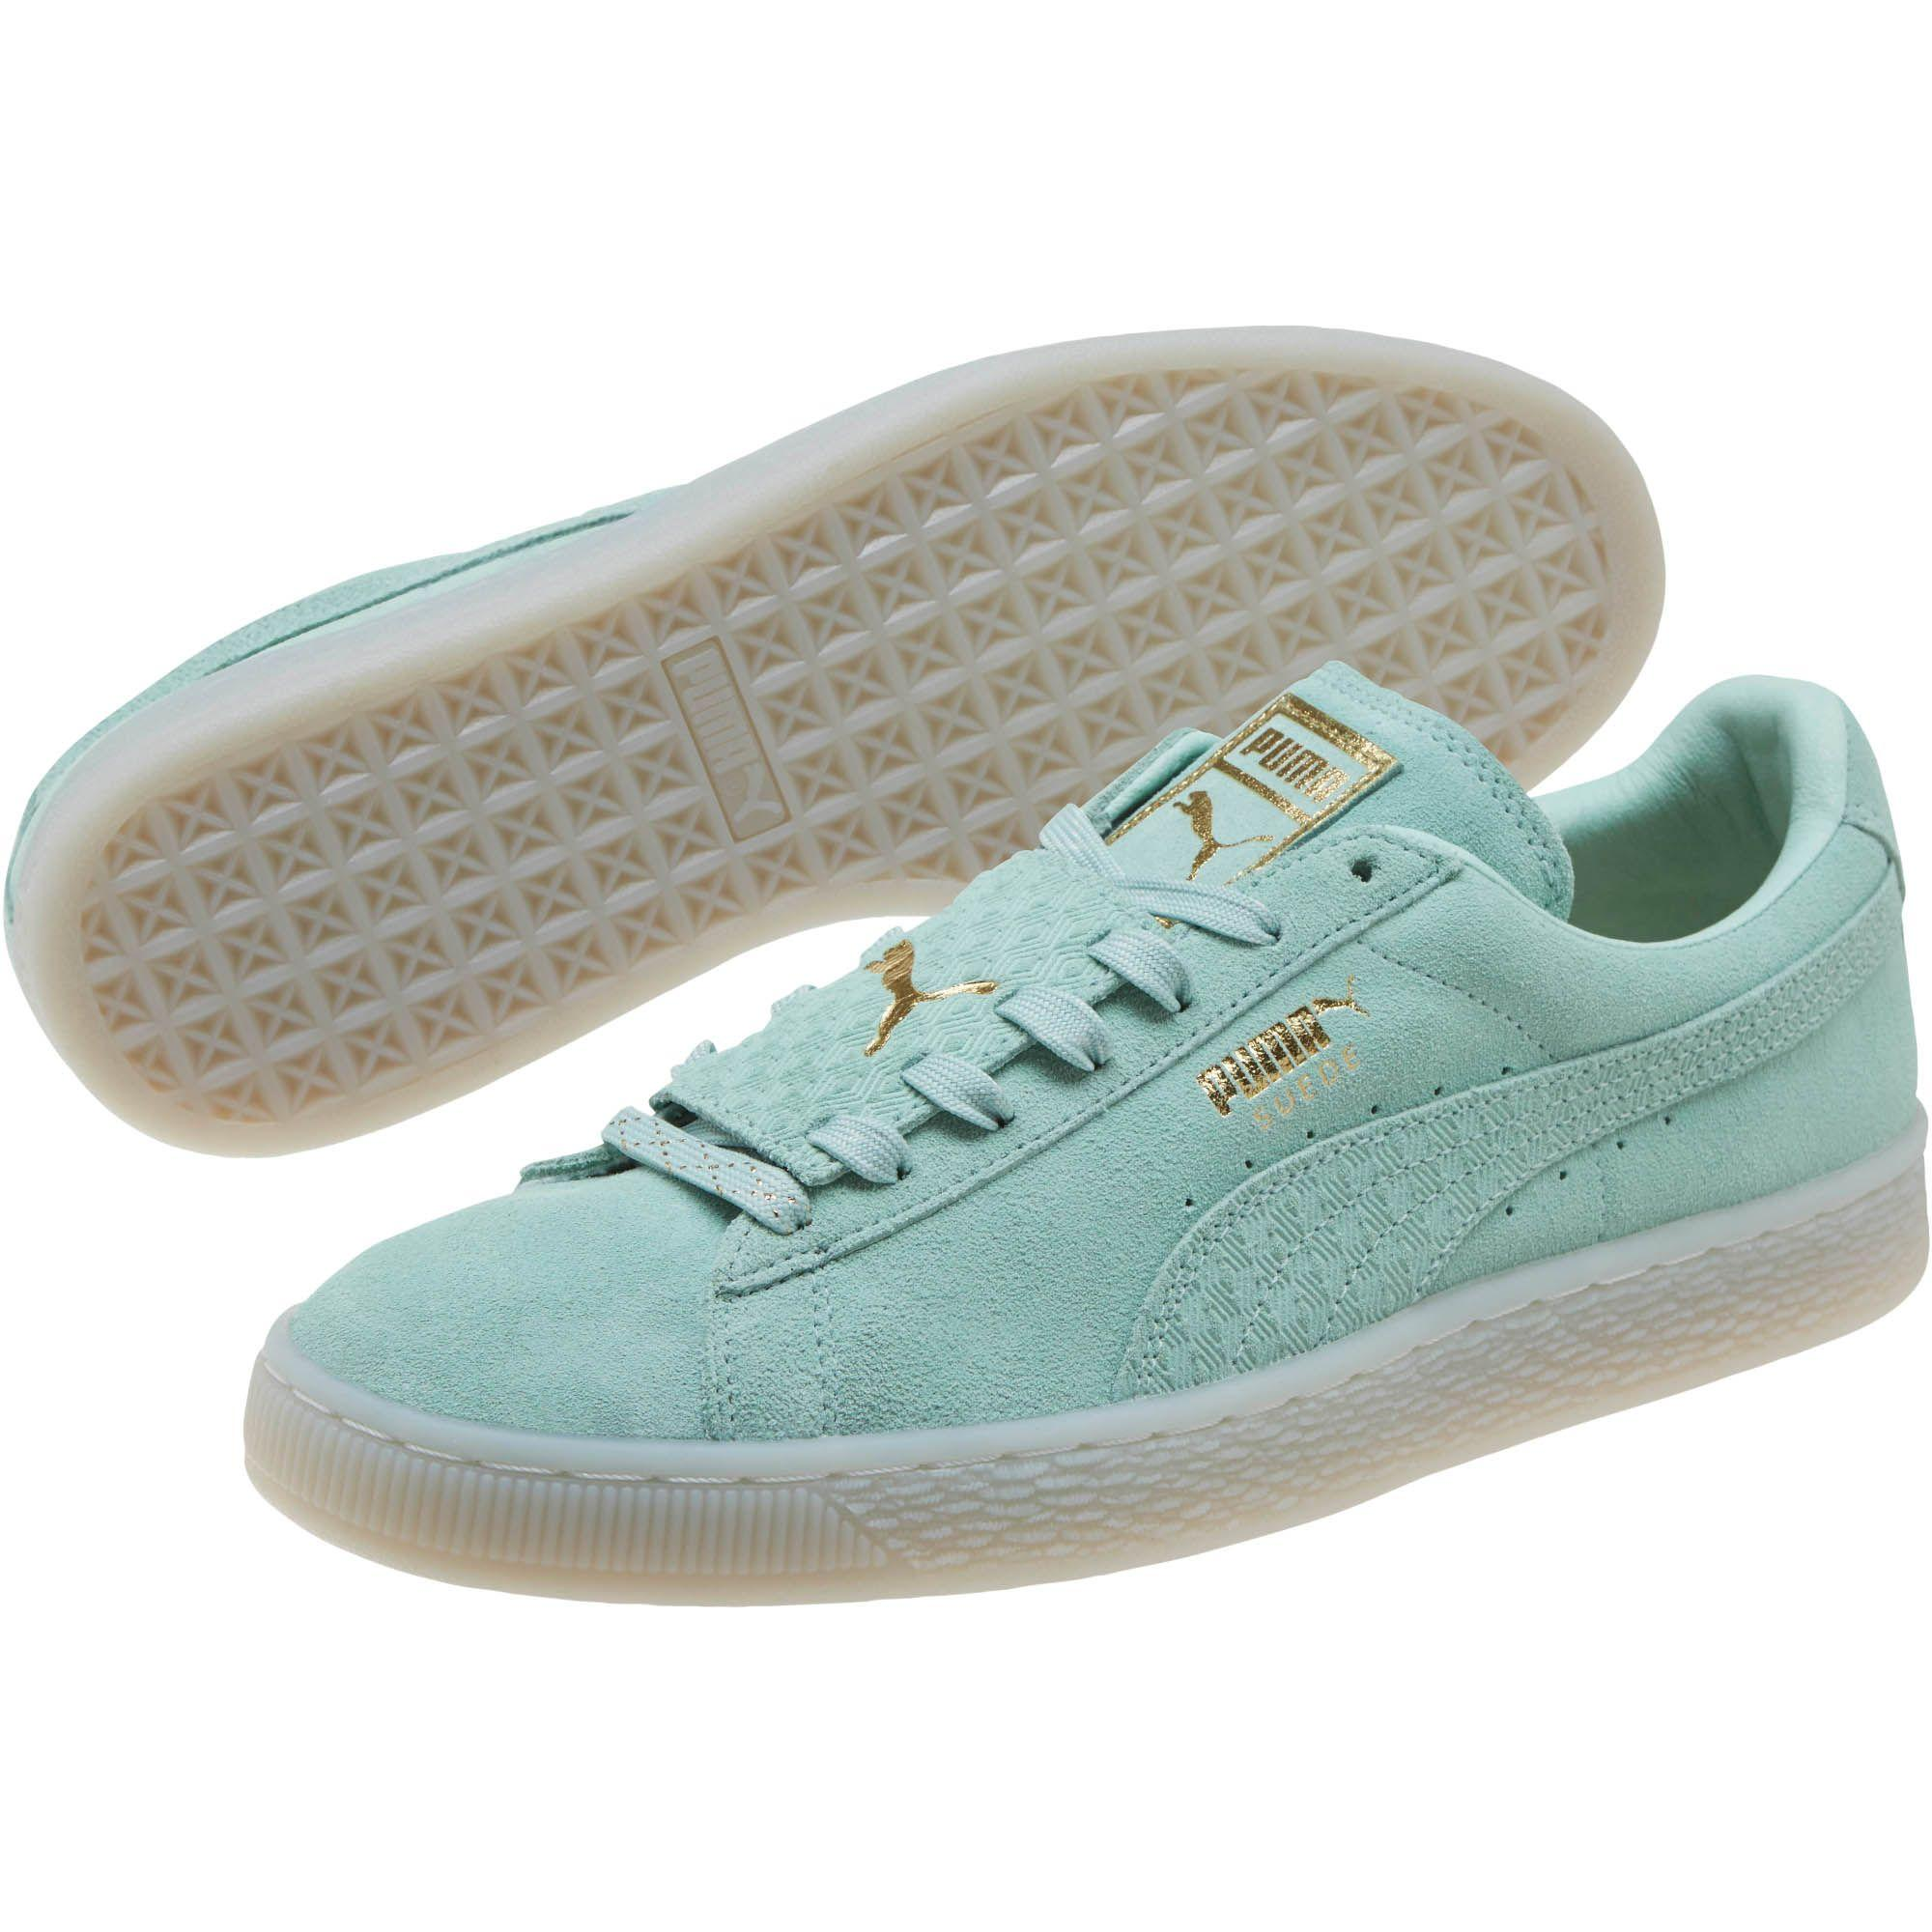 bba6219d6720 Lyst - PUMA Suede Epic Remix Men s Sneakers in Green for Men